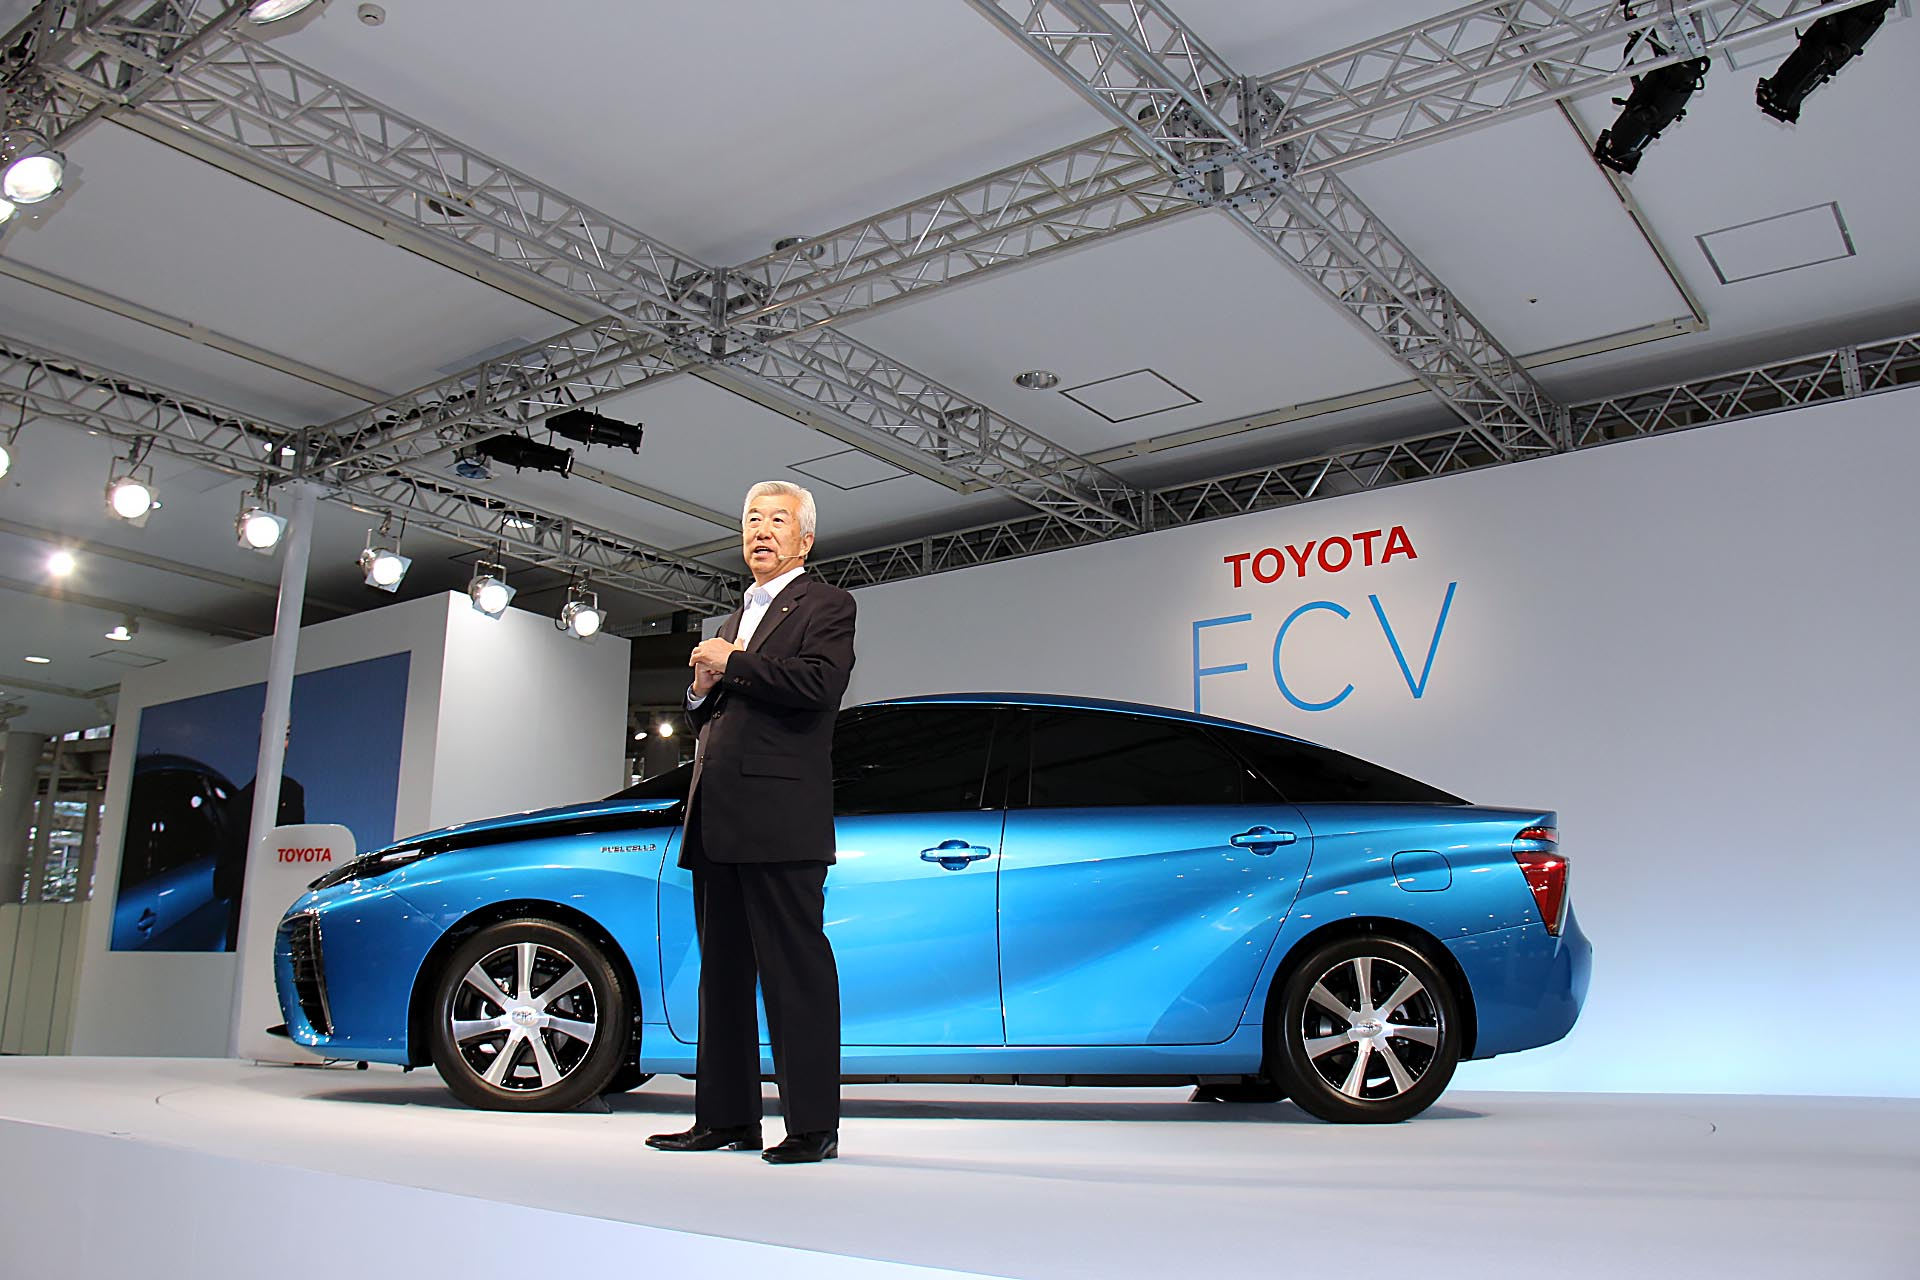 new car launches june 2014FileToyota FCV reveal 25 June 2014  by Bertel Schmitt 02jpg